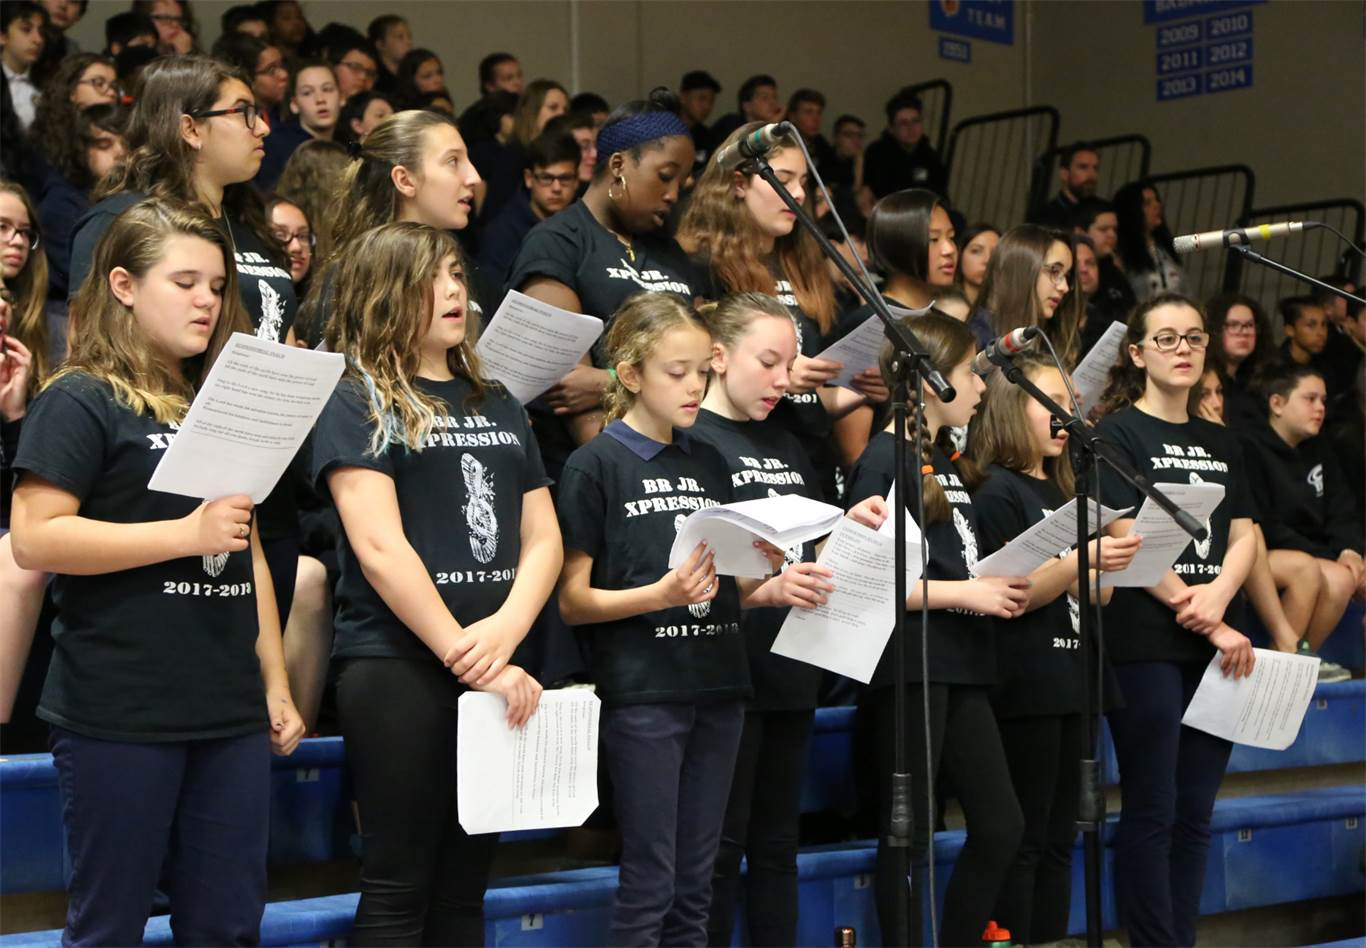 Music was provided by the BR Jr. Xpression under the direction of Mary Tabone.Photo by Jenna Madalena.